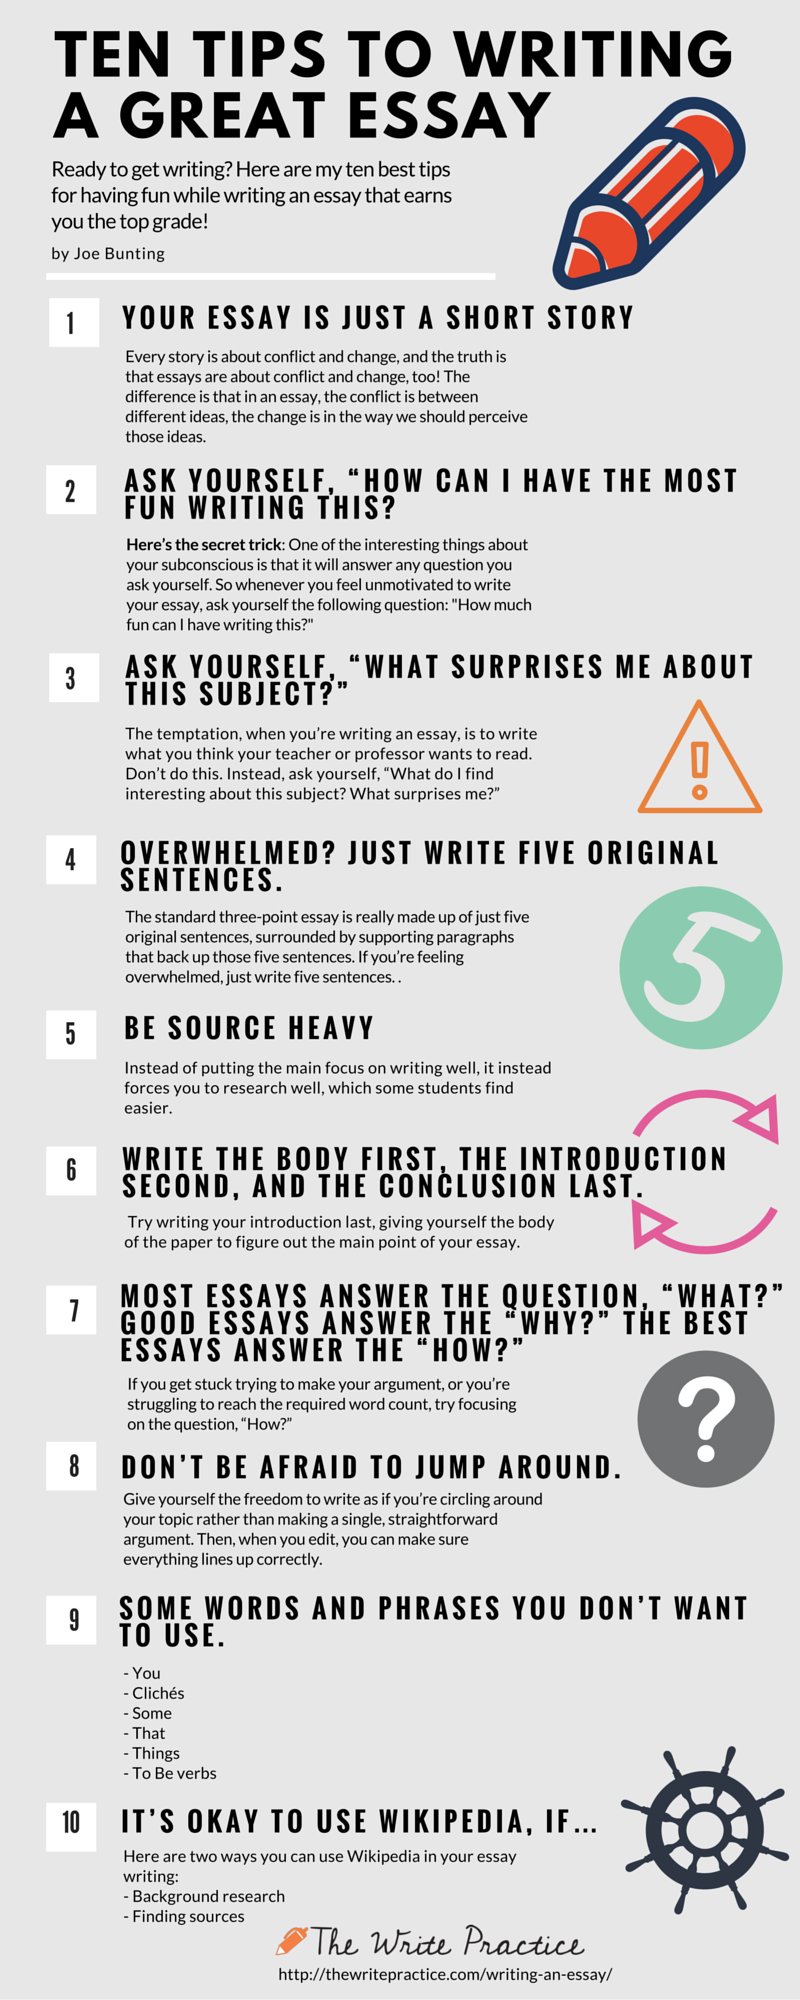 001 Tips For Writing An Essay1 How To Right Essay Marvelous A Write History Ib Introduction Example College Fast Full